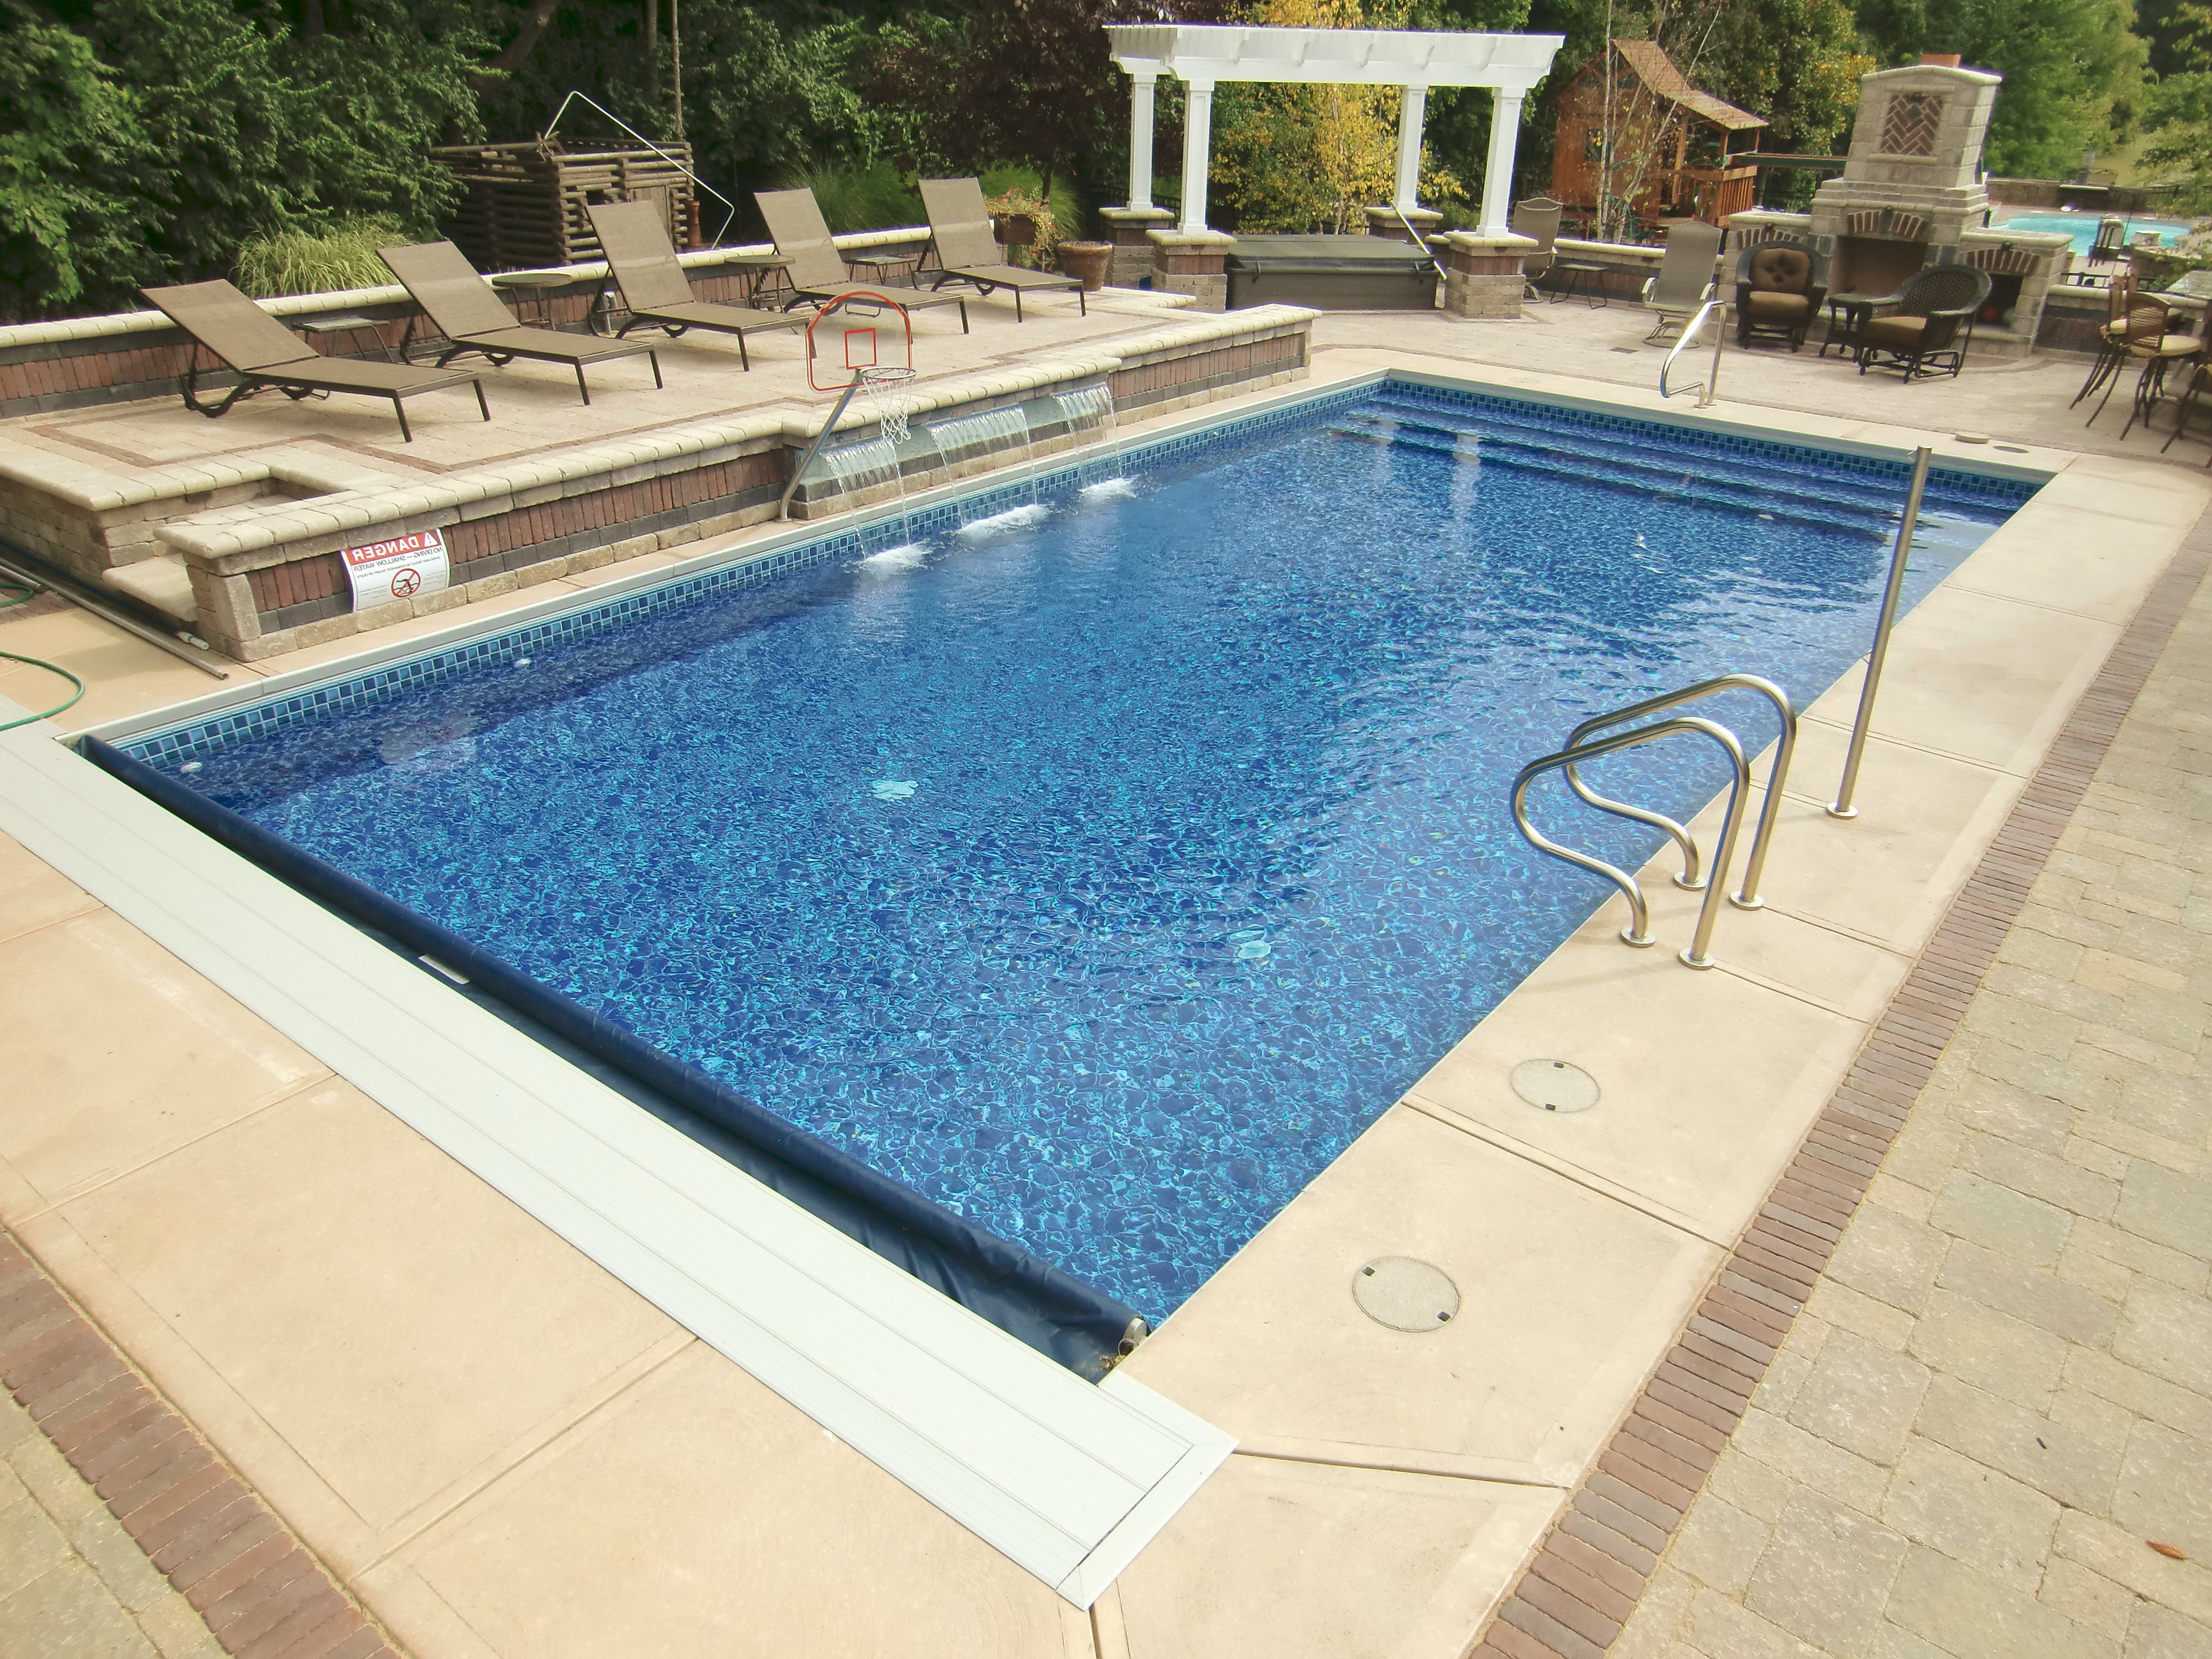 How Much Does Experience Matter in Inground Pool Building?